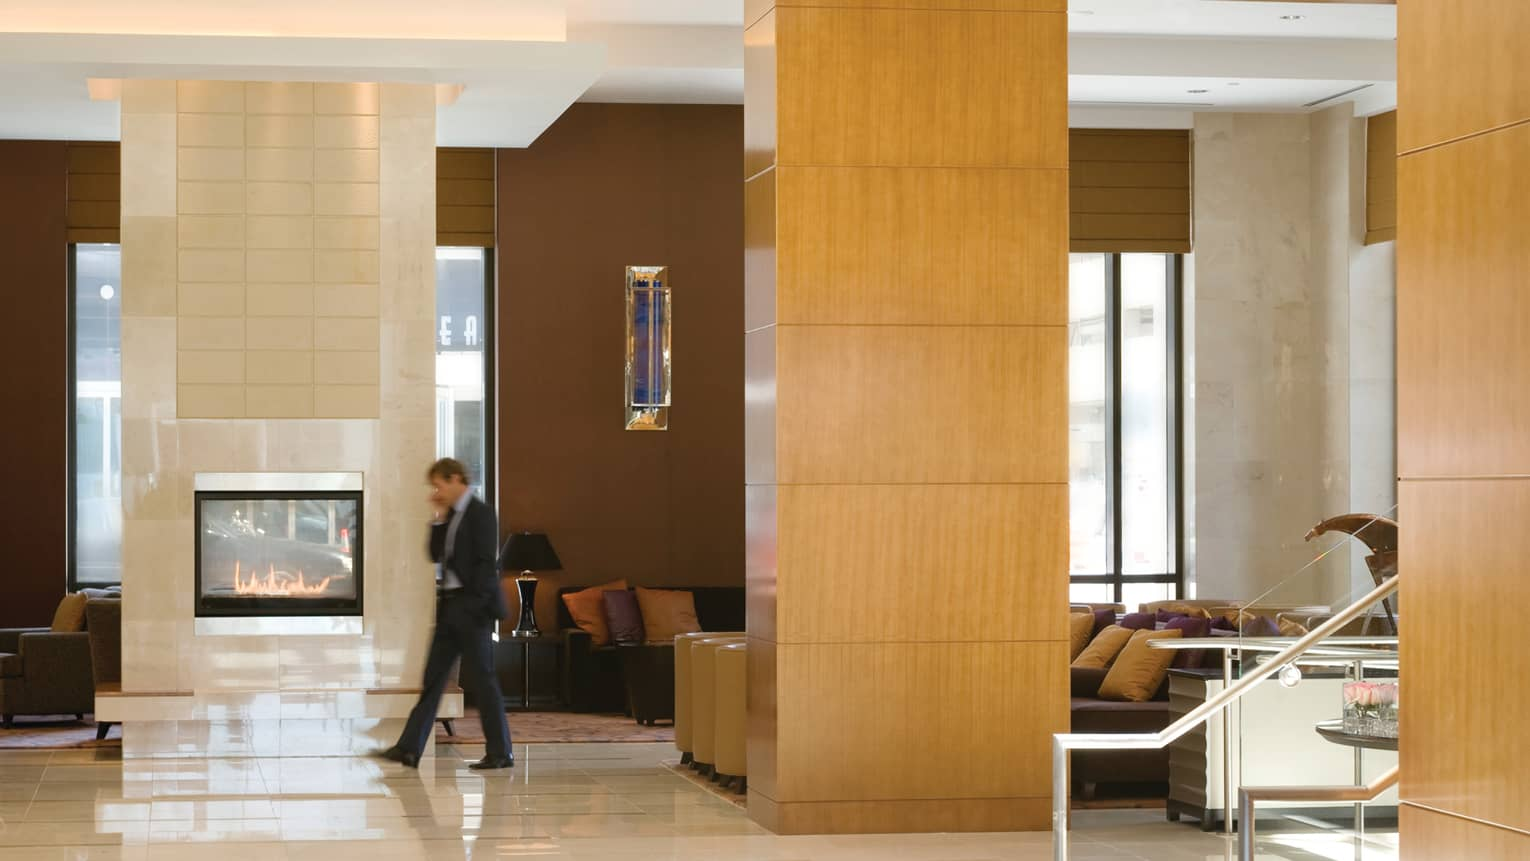 Man wearing suit walks by modern gas fireplace in Four Seasons Hotel Denver lobby